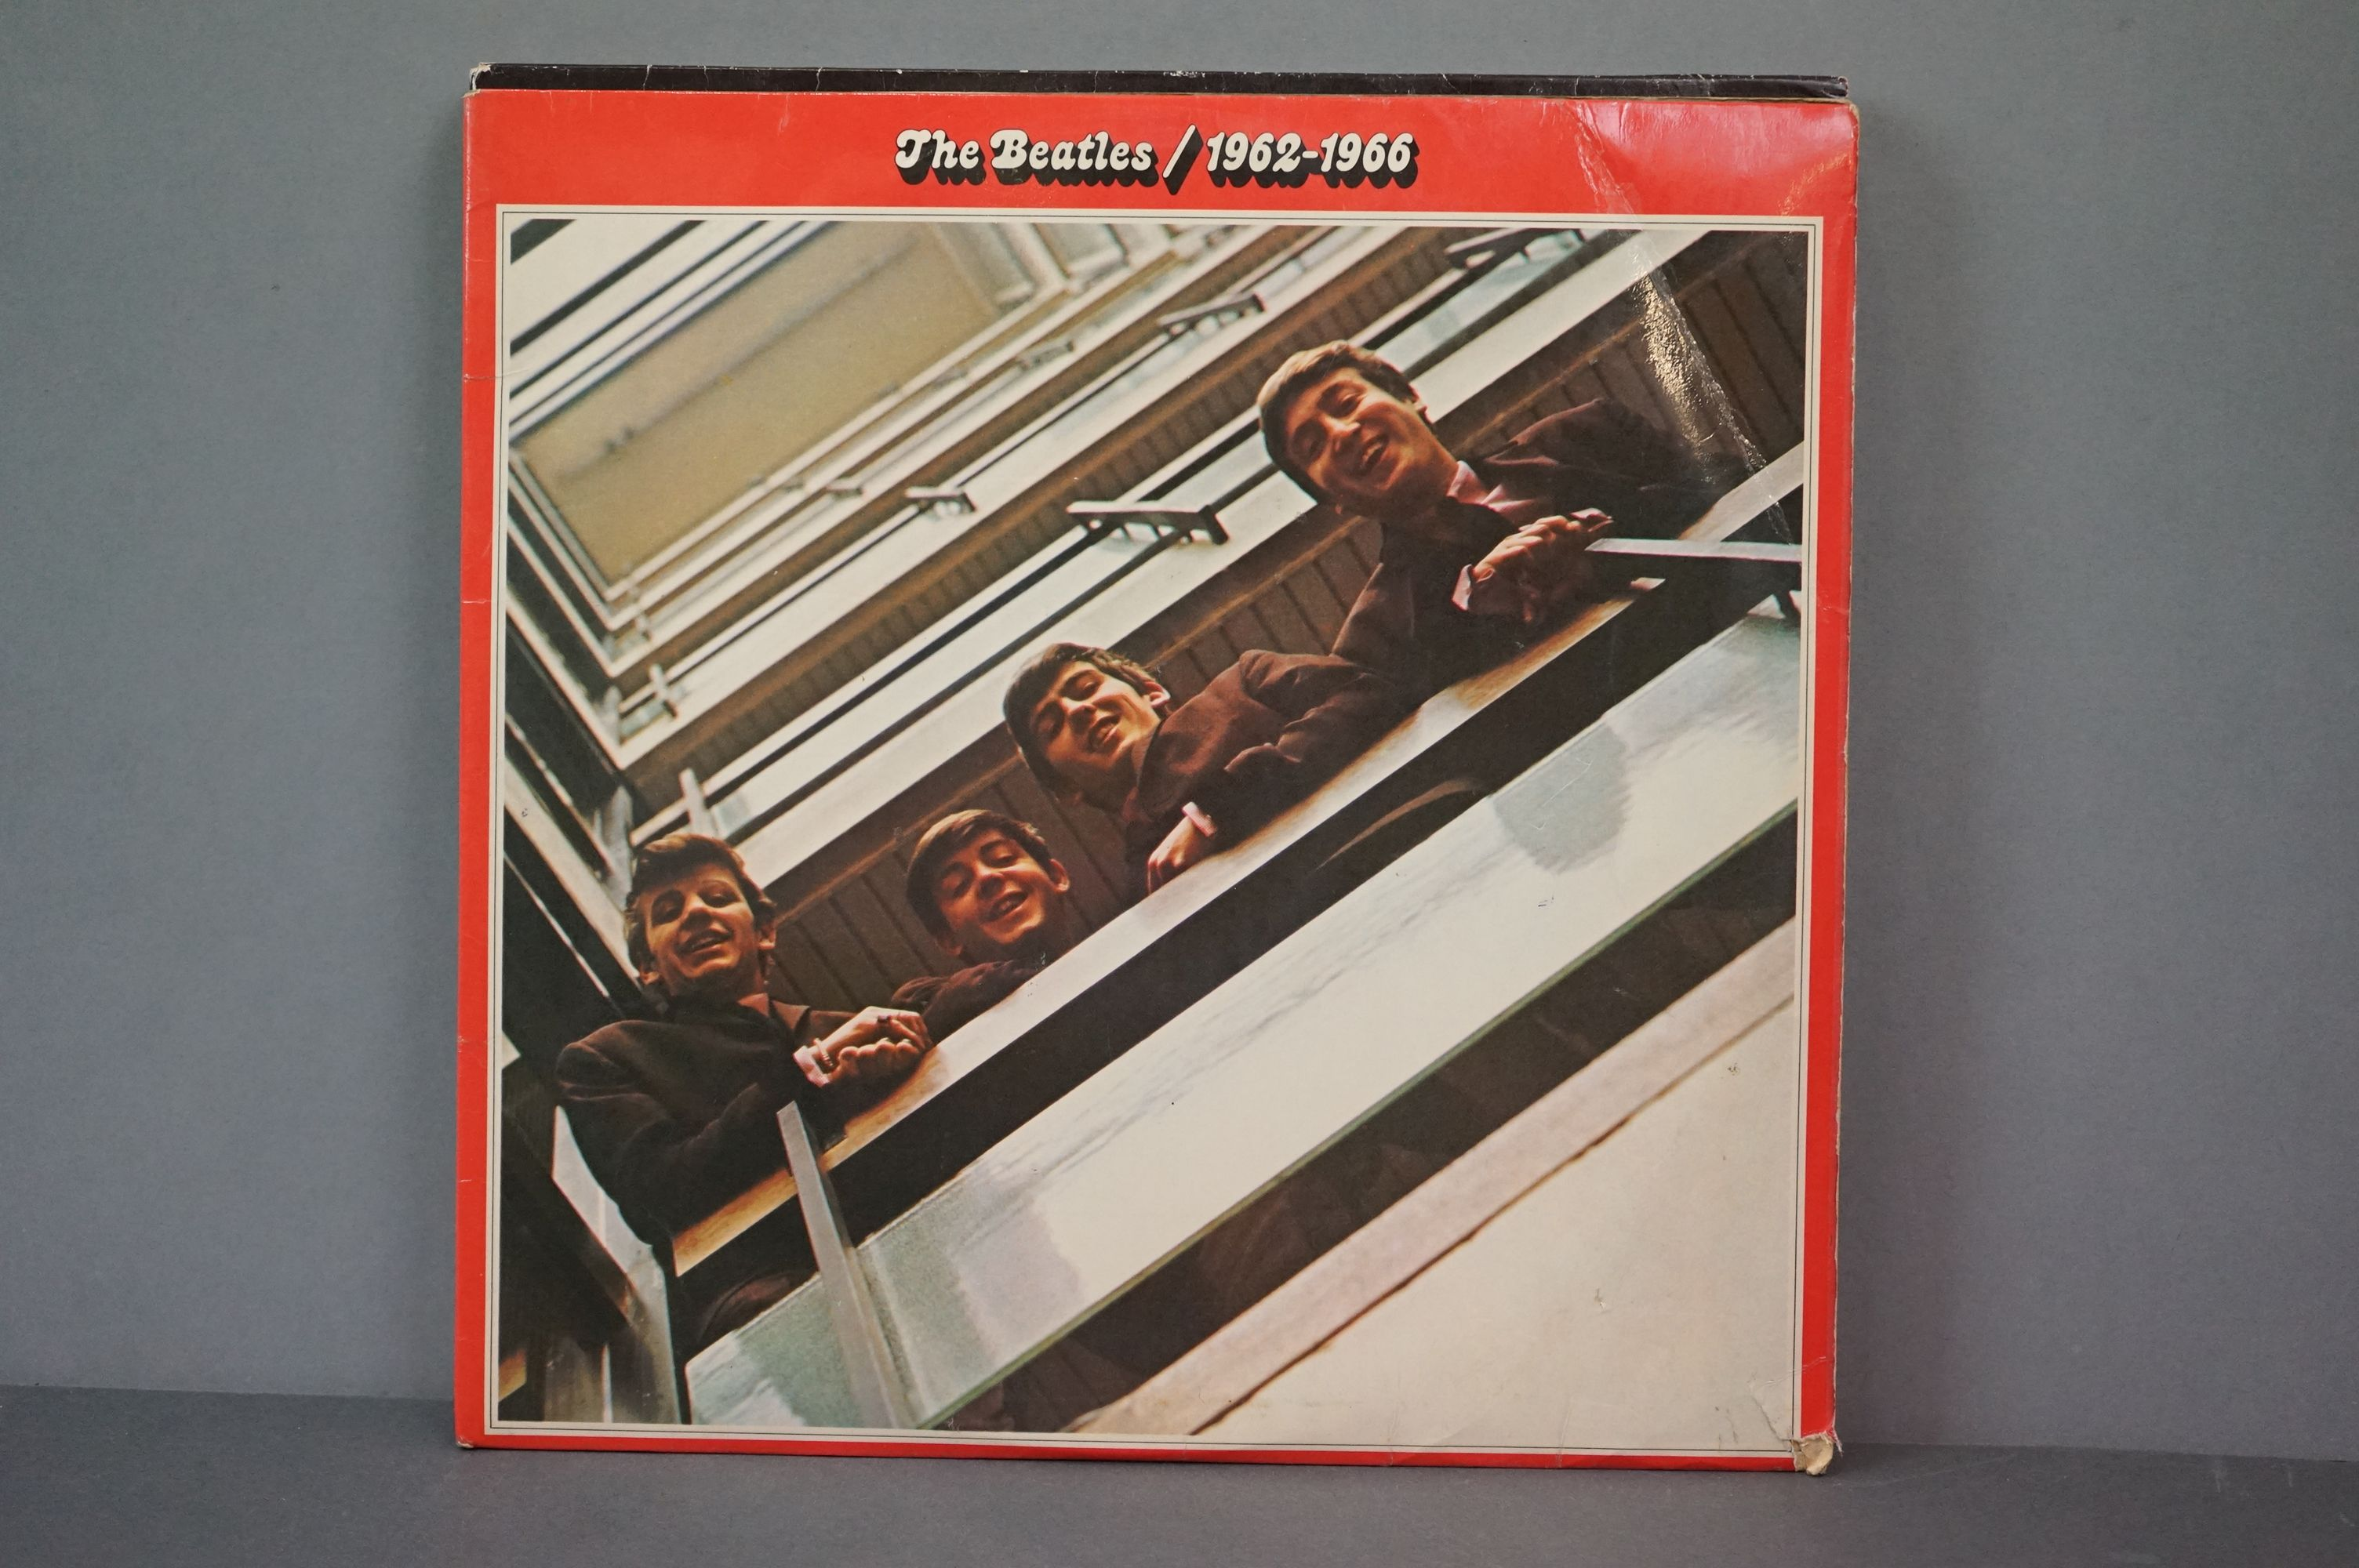 Vinyl - The Beatles and band members LPs to include 1962-1966 and 1967-1970 (black vinyl), Wings - Image 6 of 11